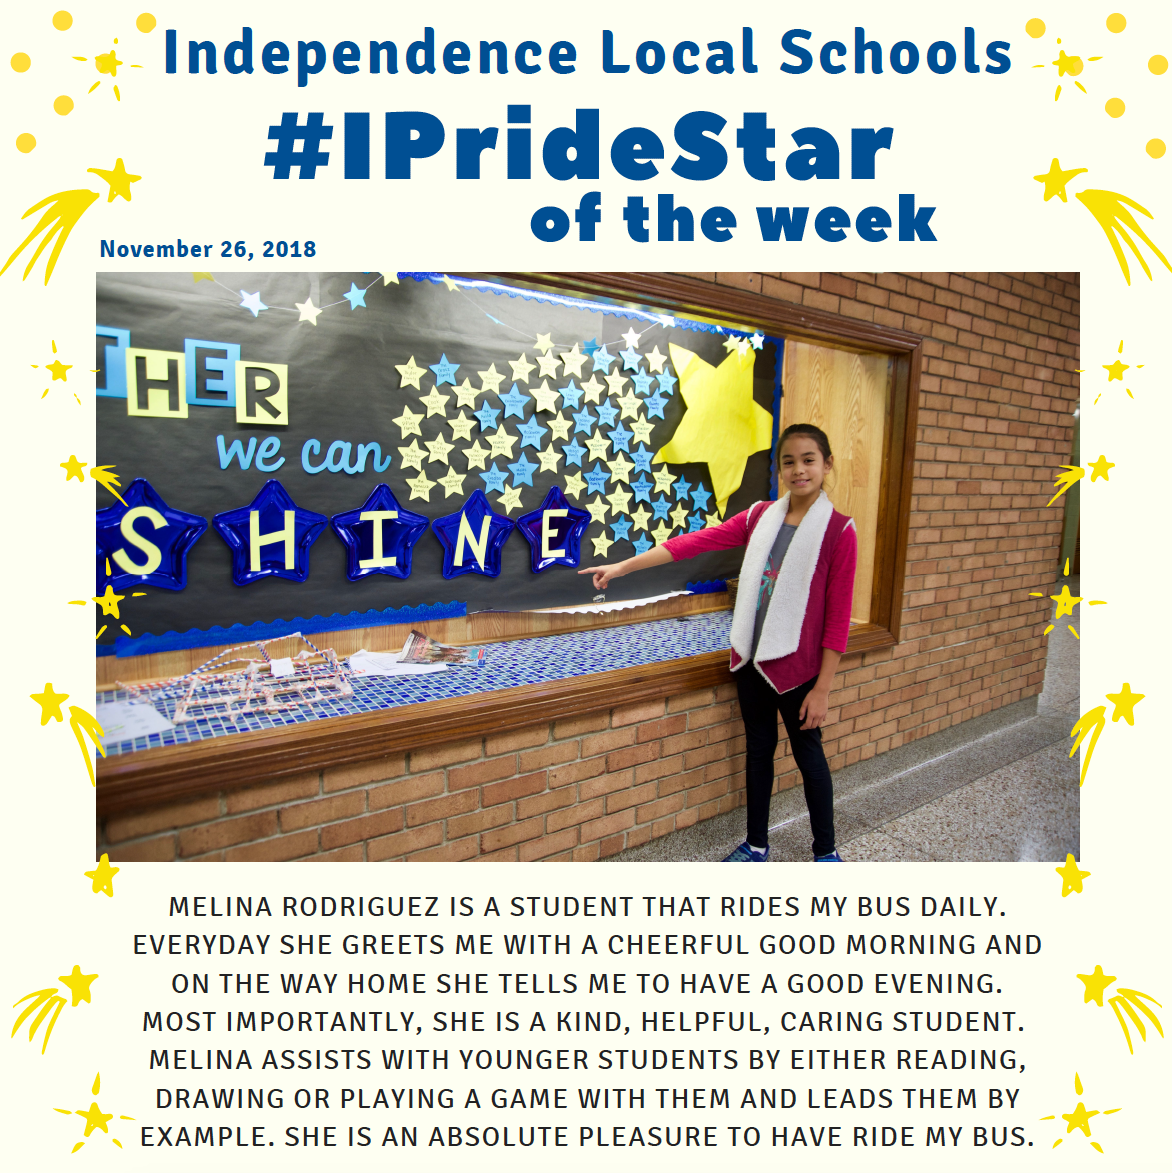 IPride Star of the Week